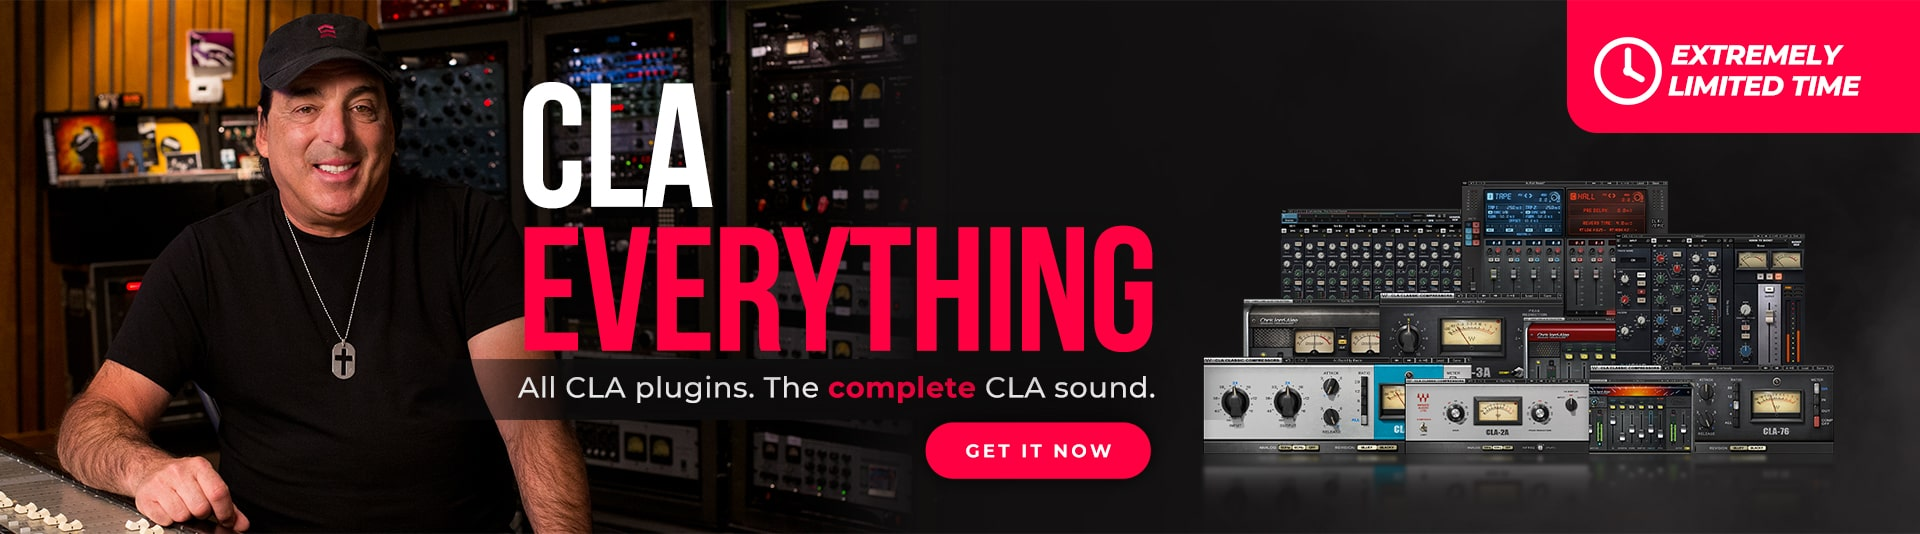 LIMITED TIME: CLA Everything – All CLA plugins. The Complete CLA Sound.